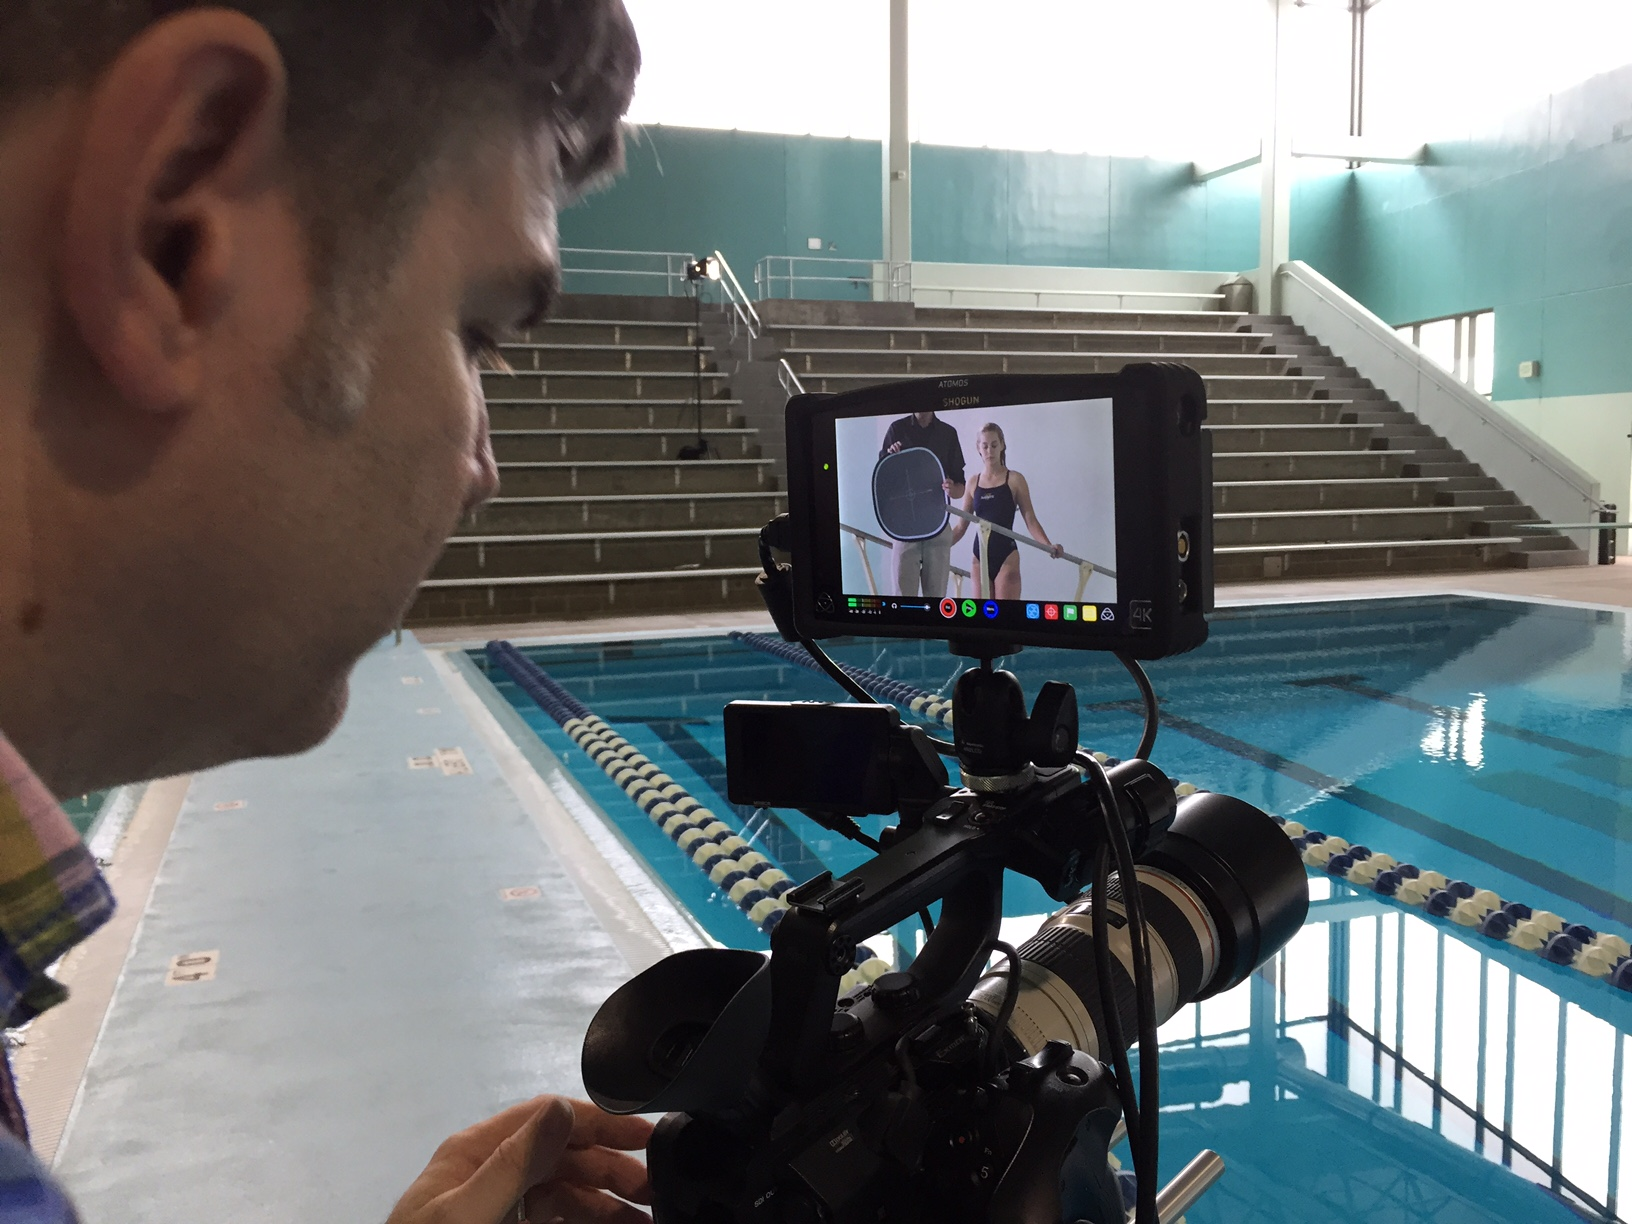 Senior DP Todd Norris adjusting the white balance while our diver/actress awaits her next action